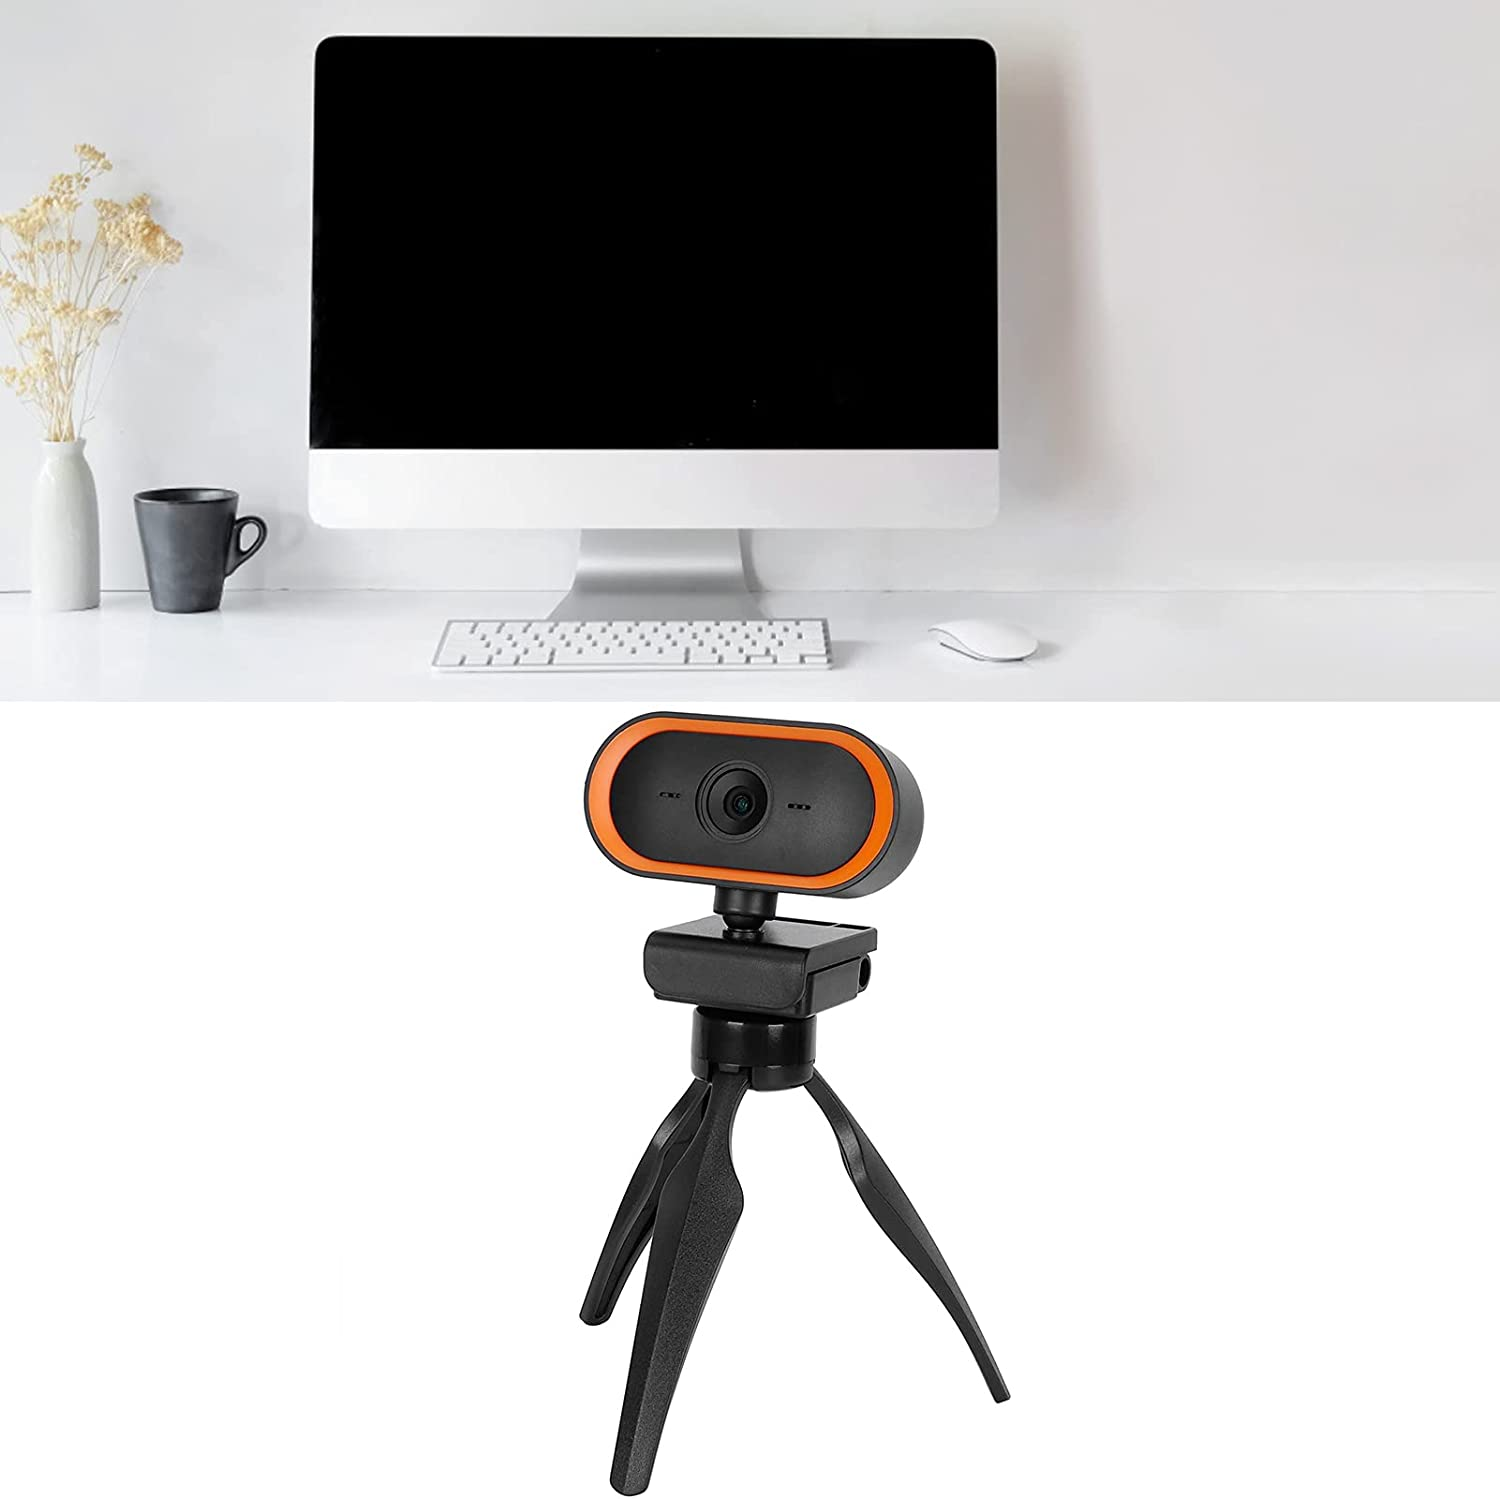 Webcam Free Shipping Cheap Bargain Gift 1080P 360° Rotation Durable f Camera USB2.0 Computer Ranking integrated 1st place ABS